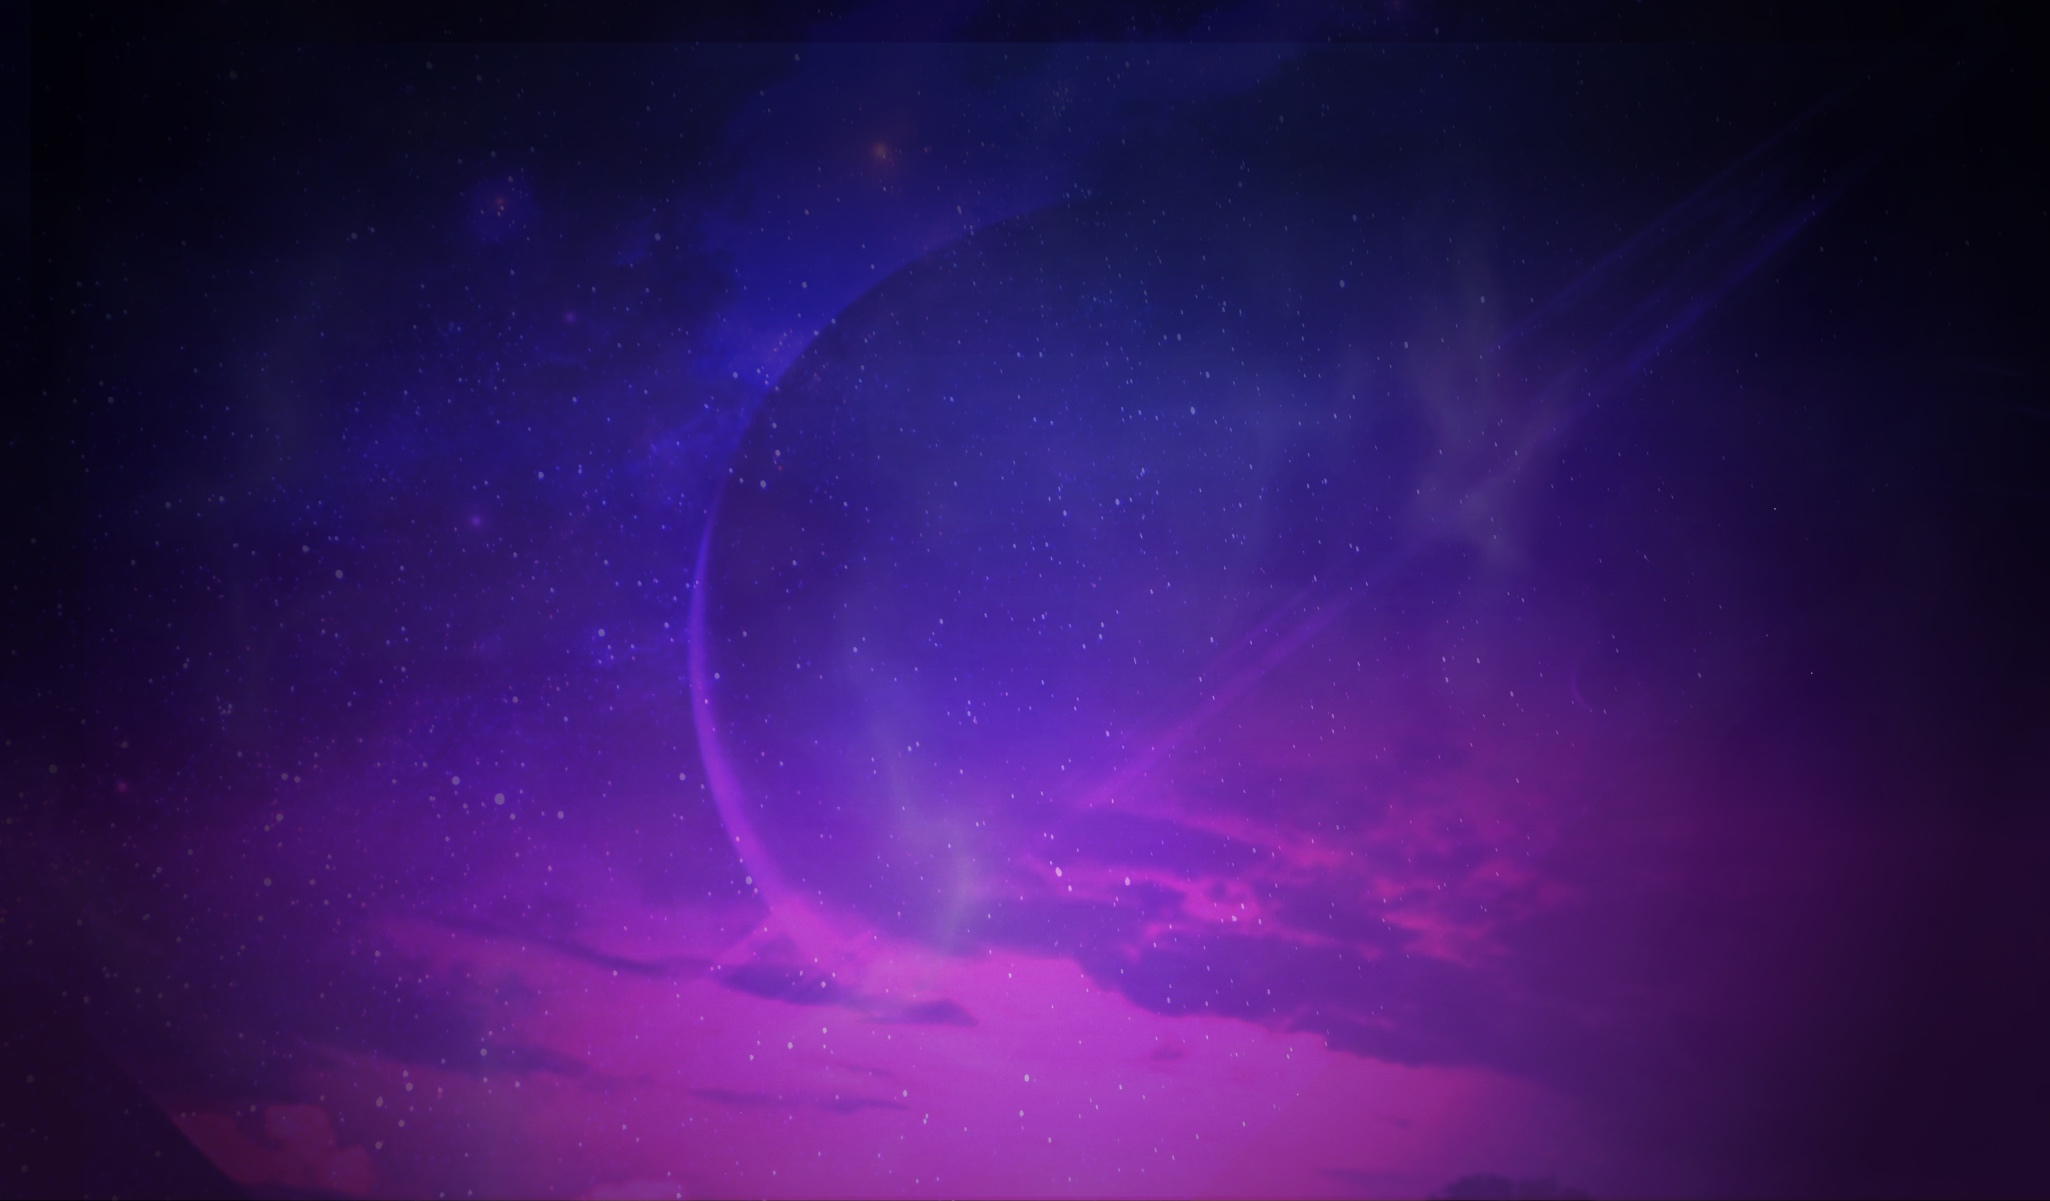 Purple space sky with big planet